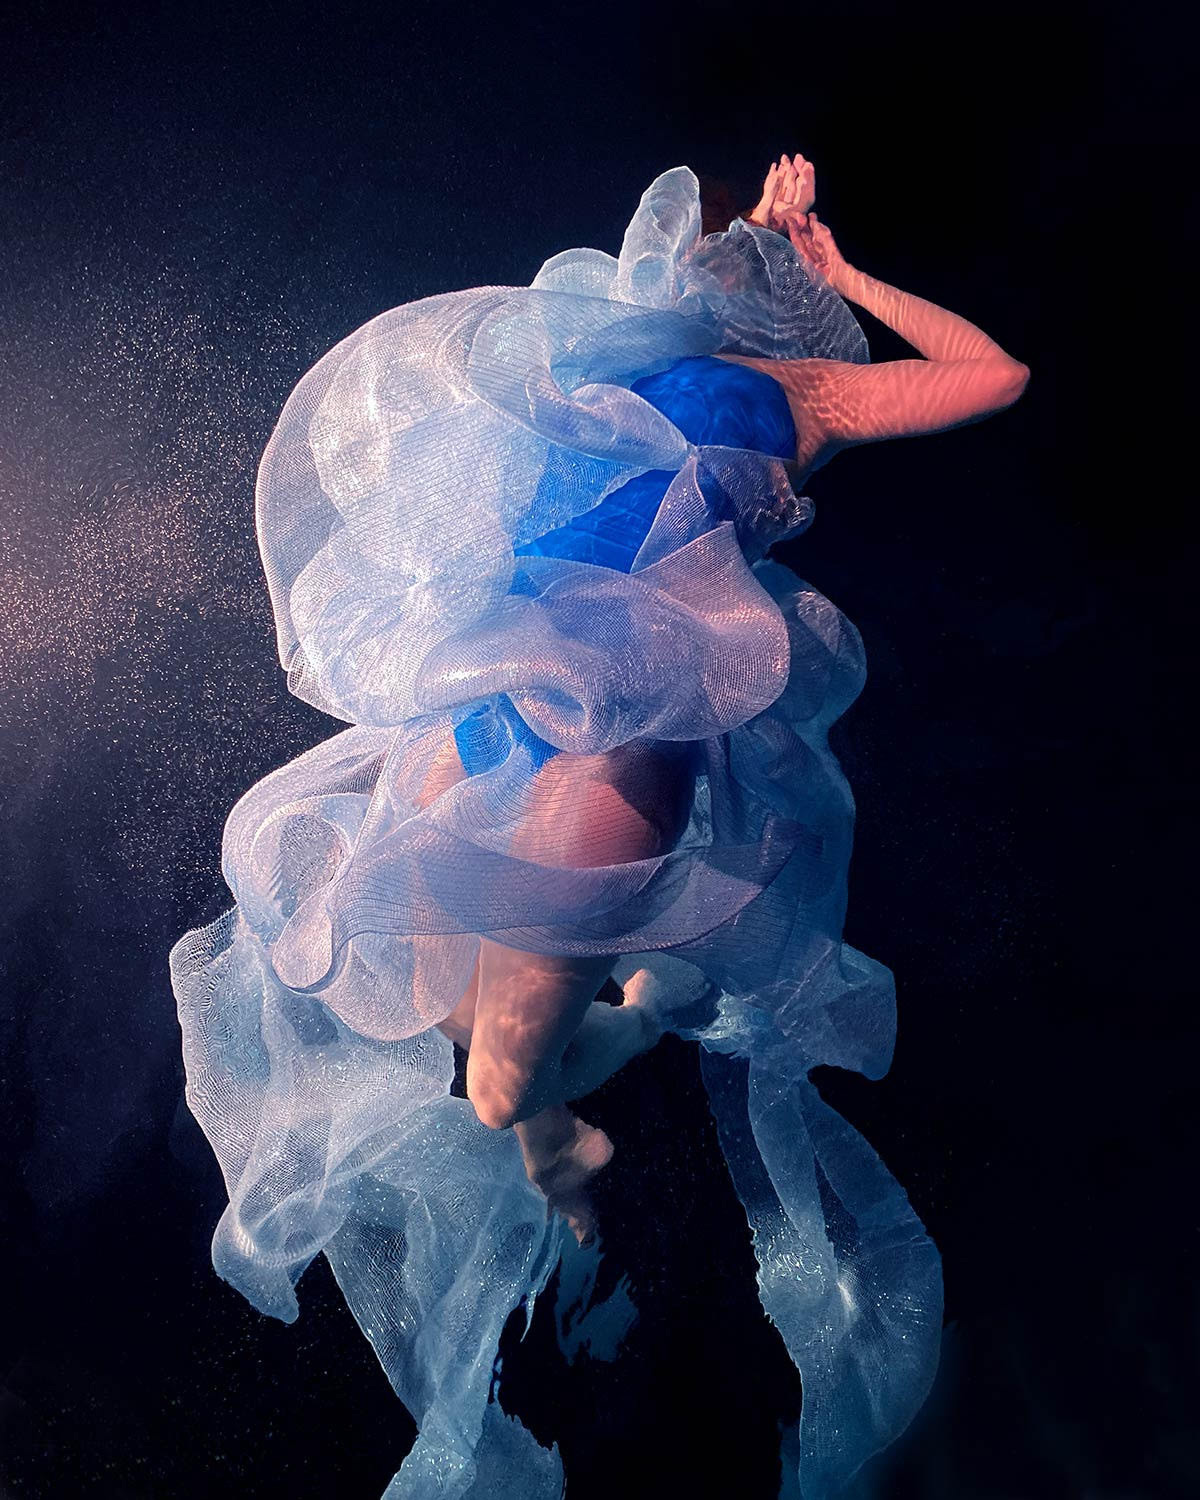 Swirling Fabrics Envelop Floating Subjects in Underwater Photographs by Christy Lee Rogers